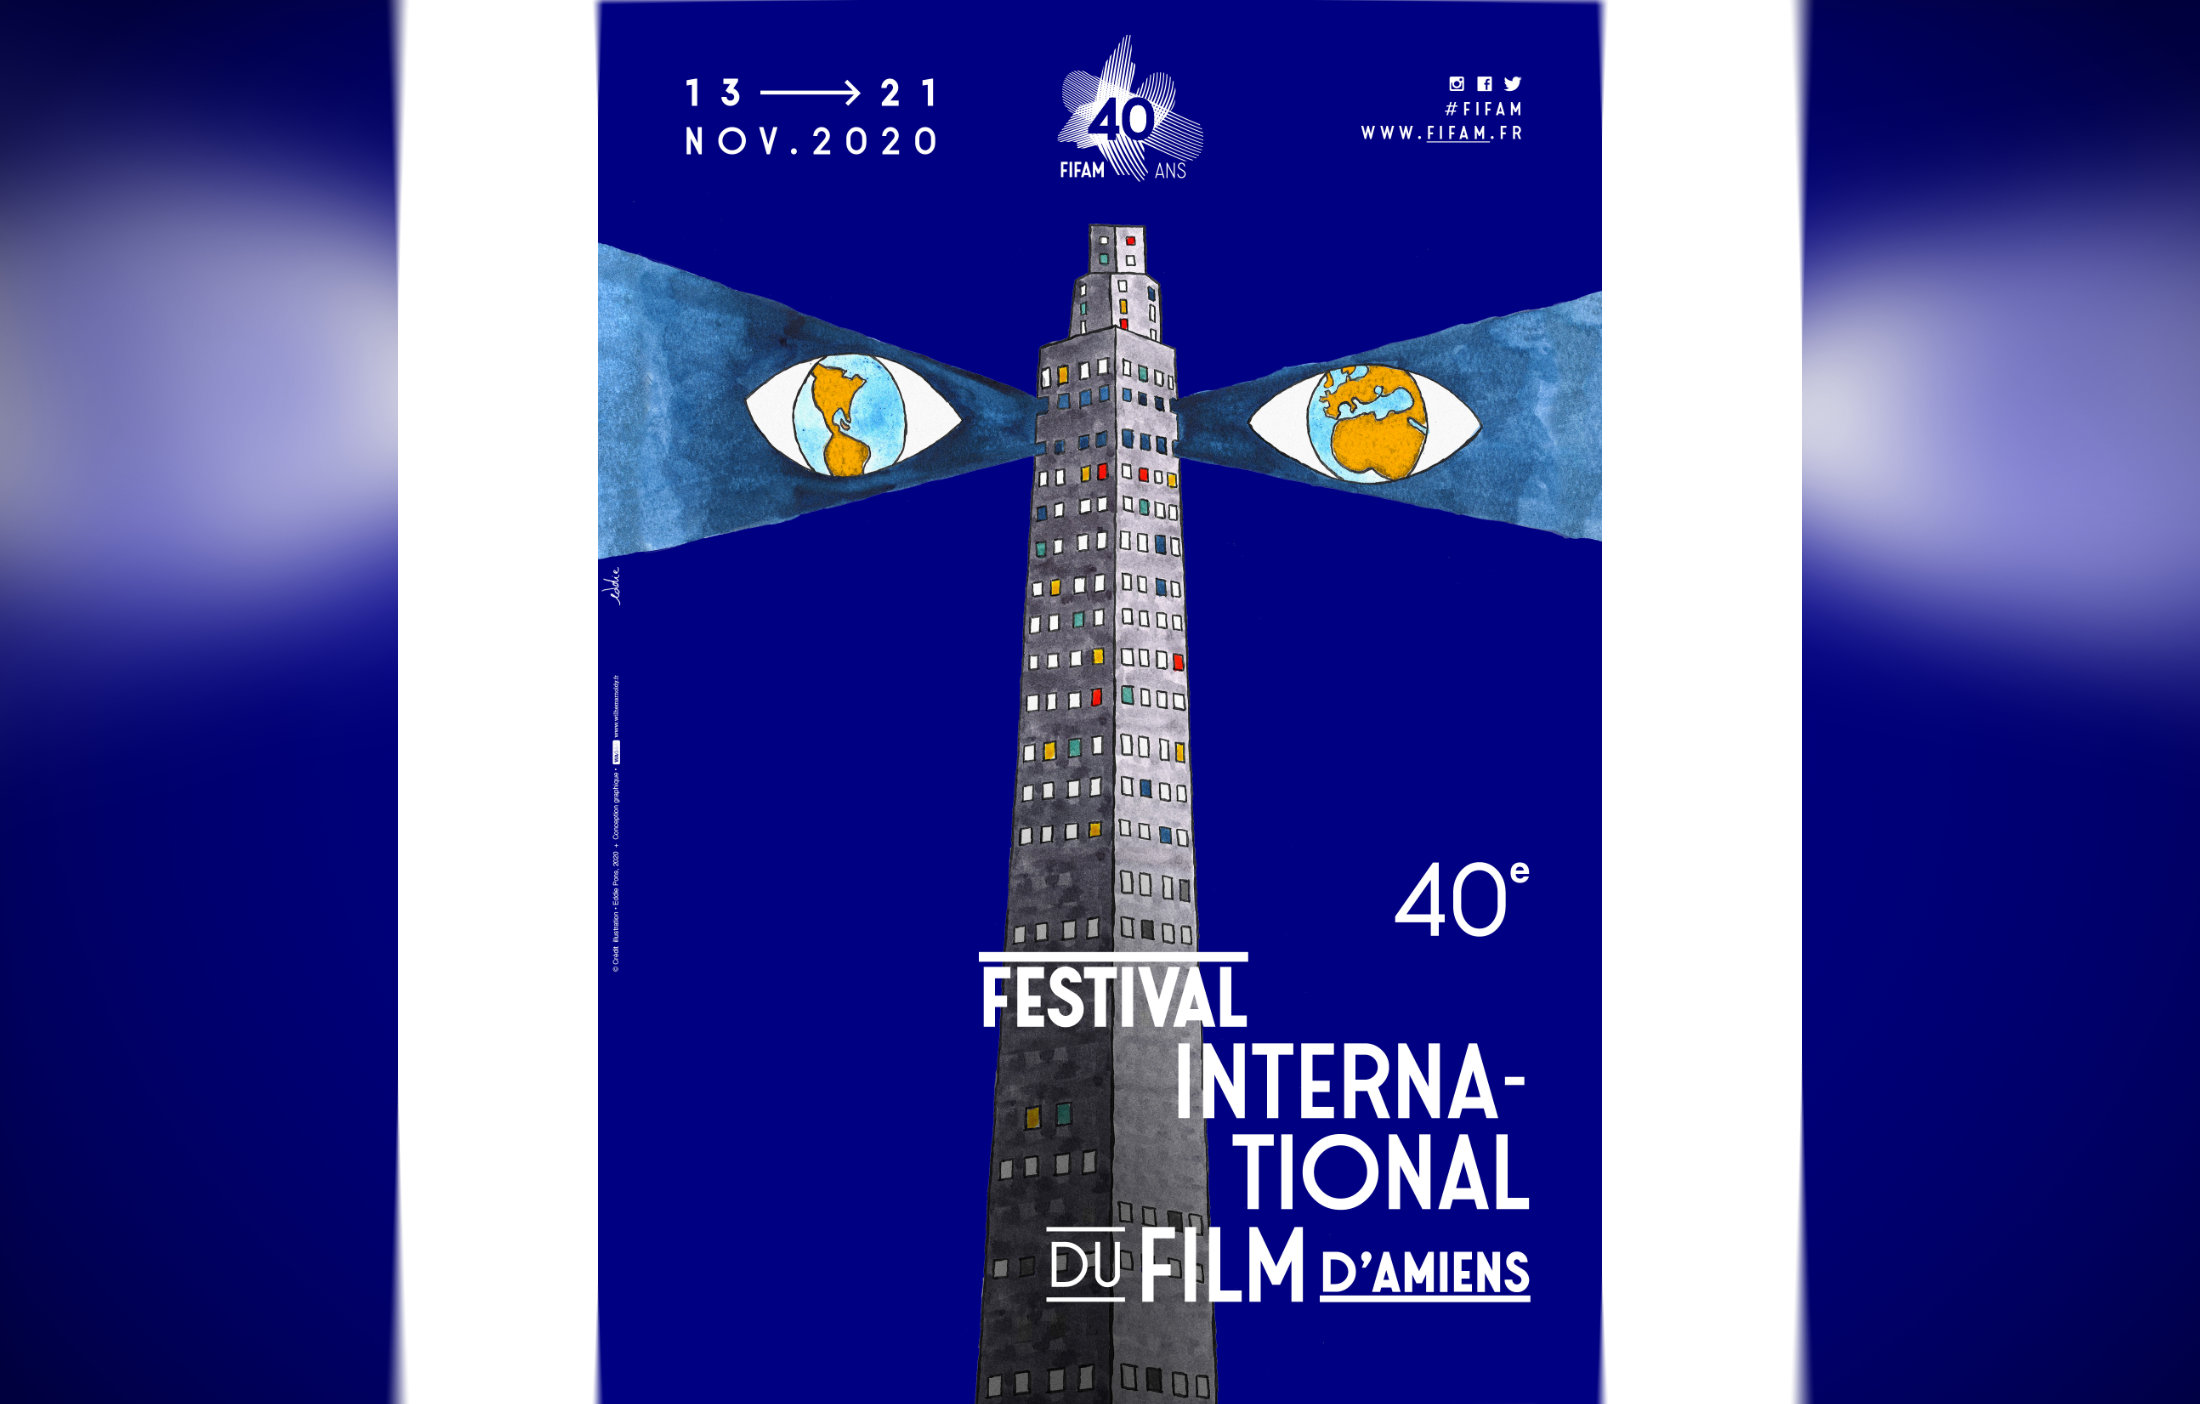 40e-Festival-international-du-film-d-Amiens@2x